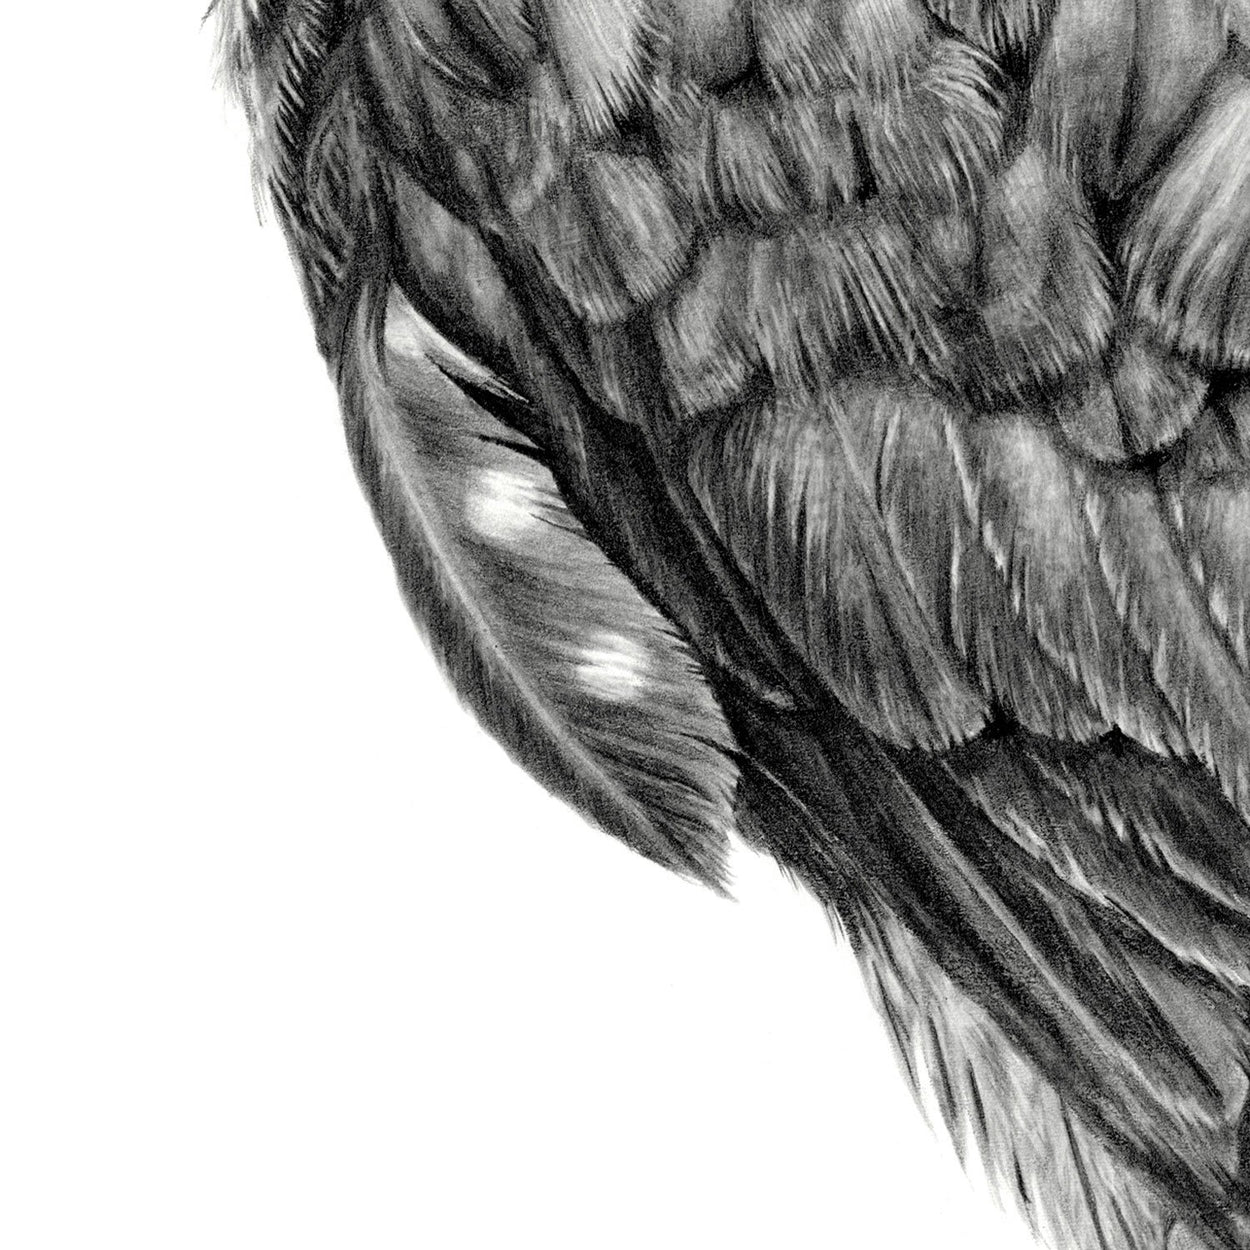 Merlin Feathers Drawing Close-up 2 - The Thriving Wild